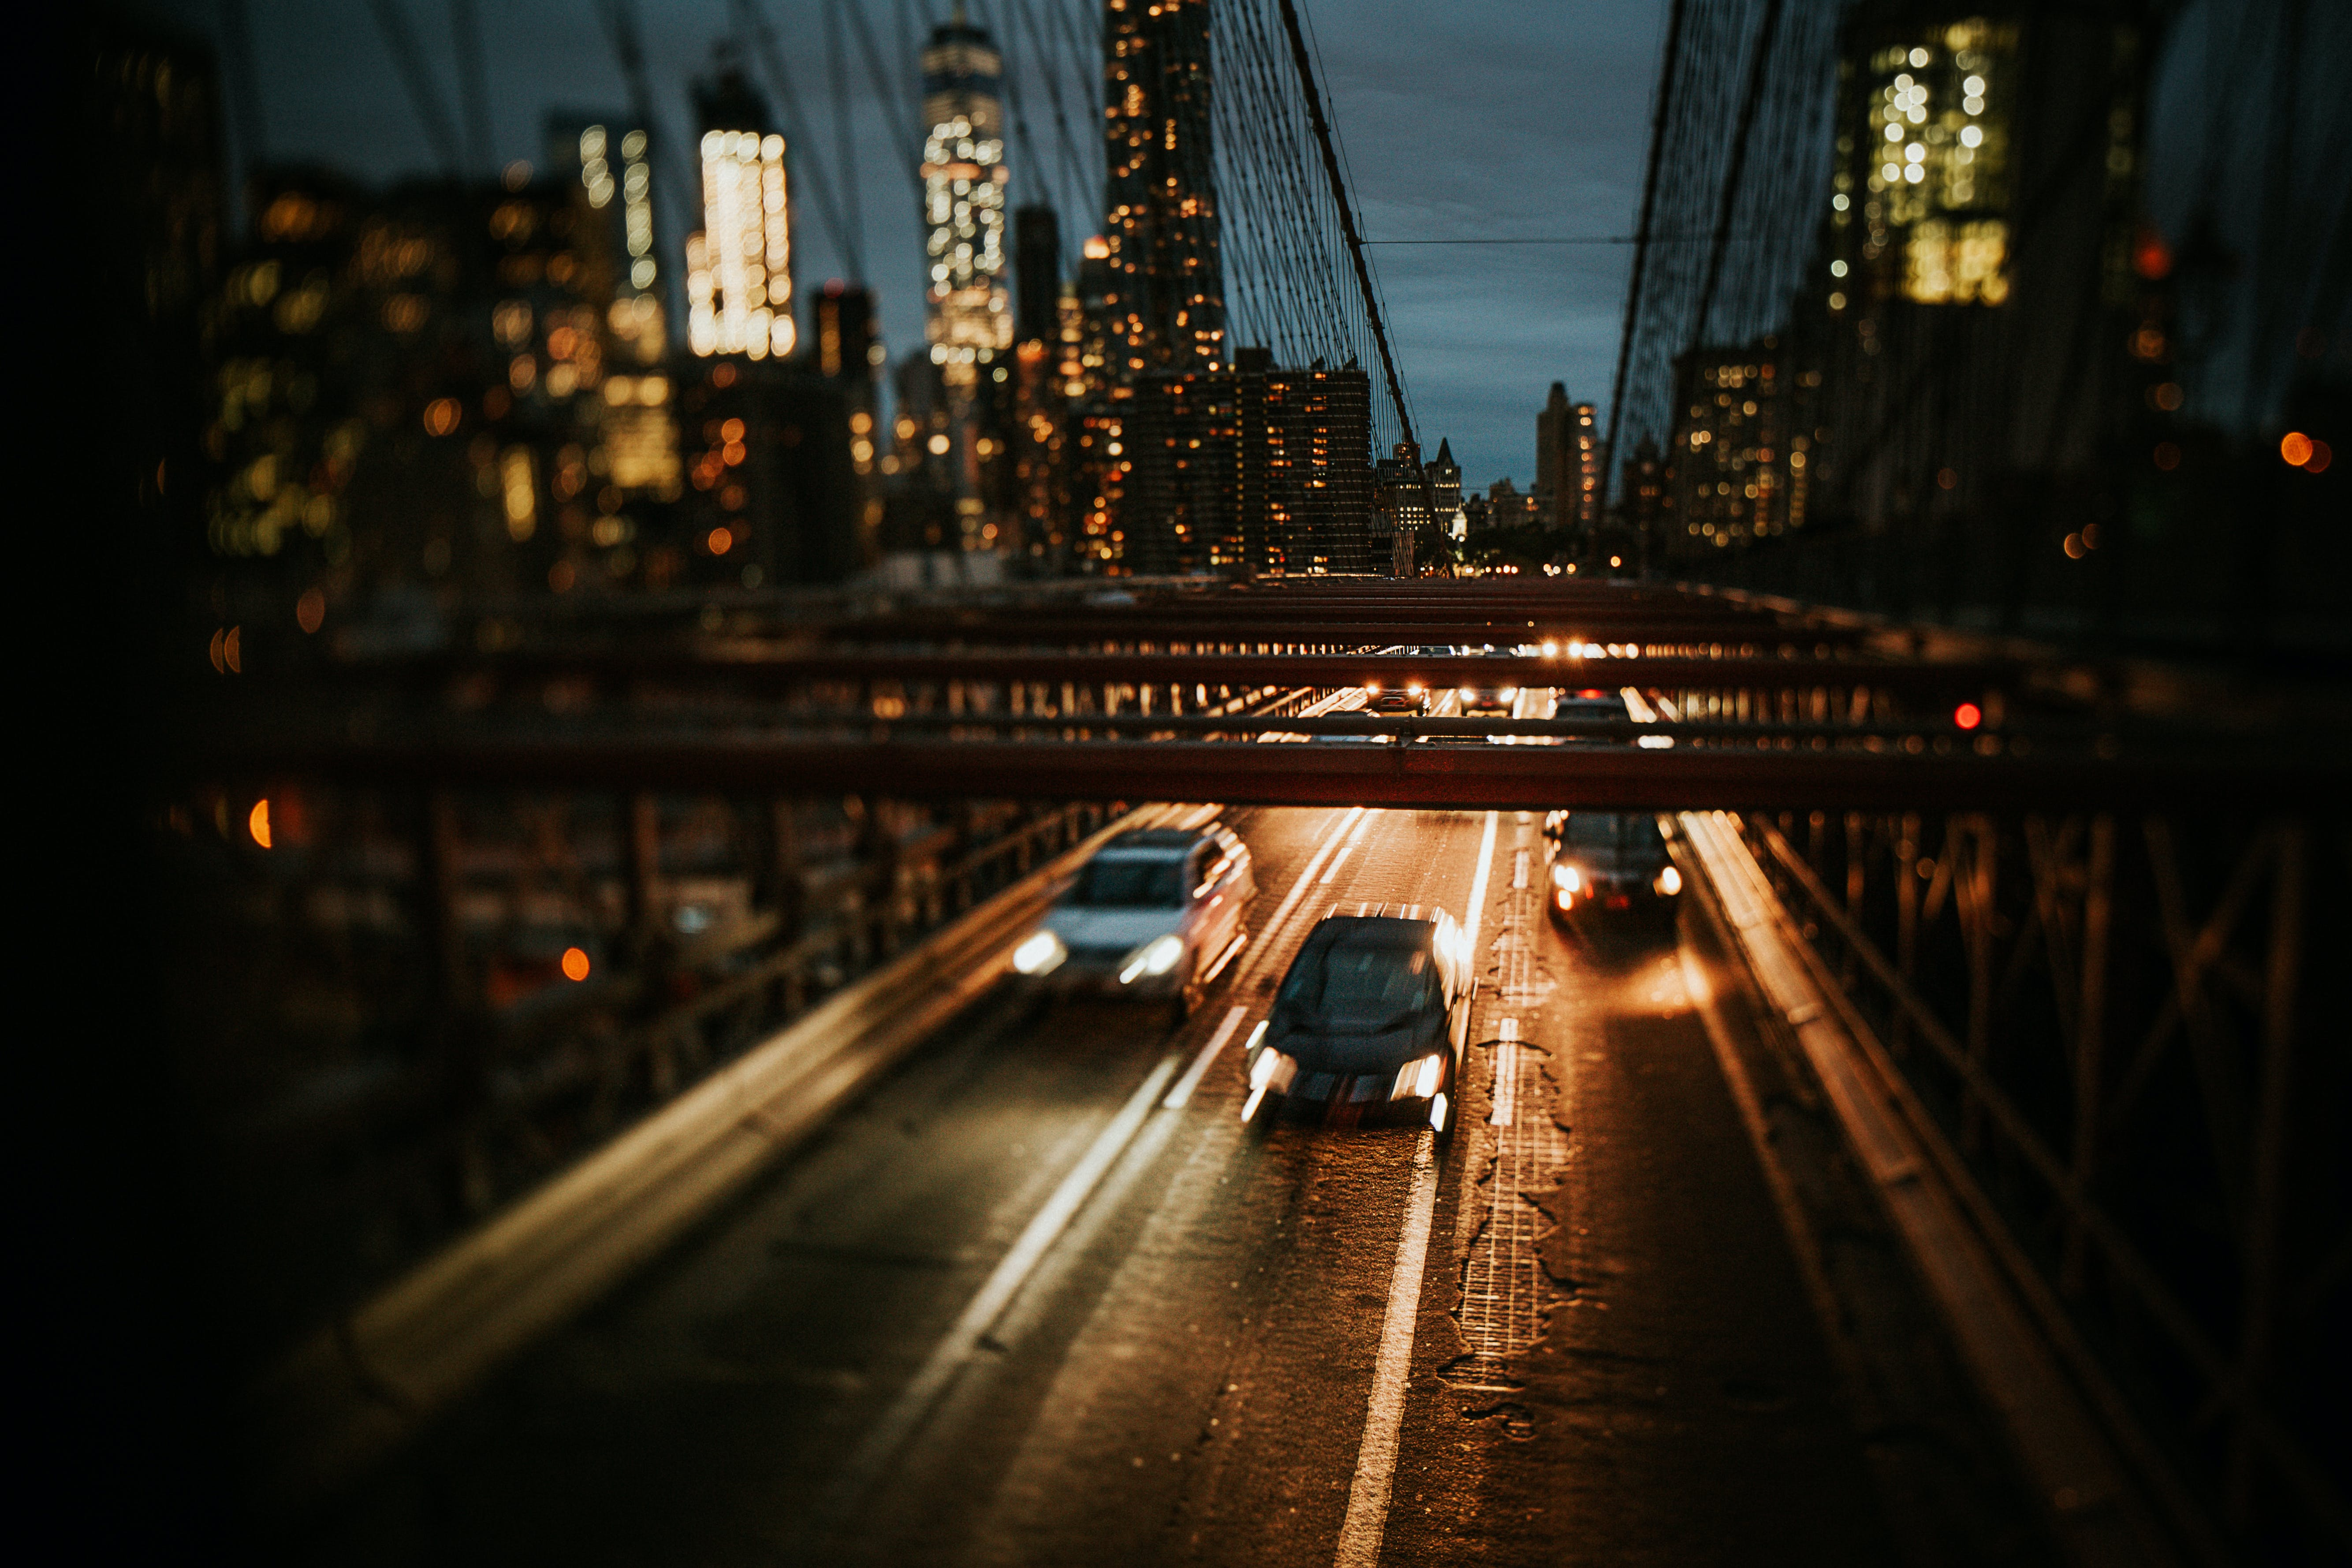 Bridge With Cars Travelling